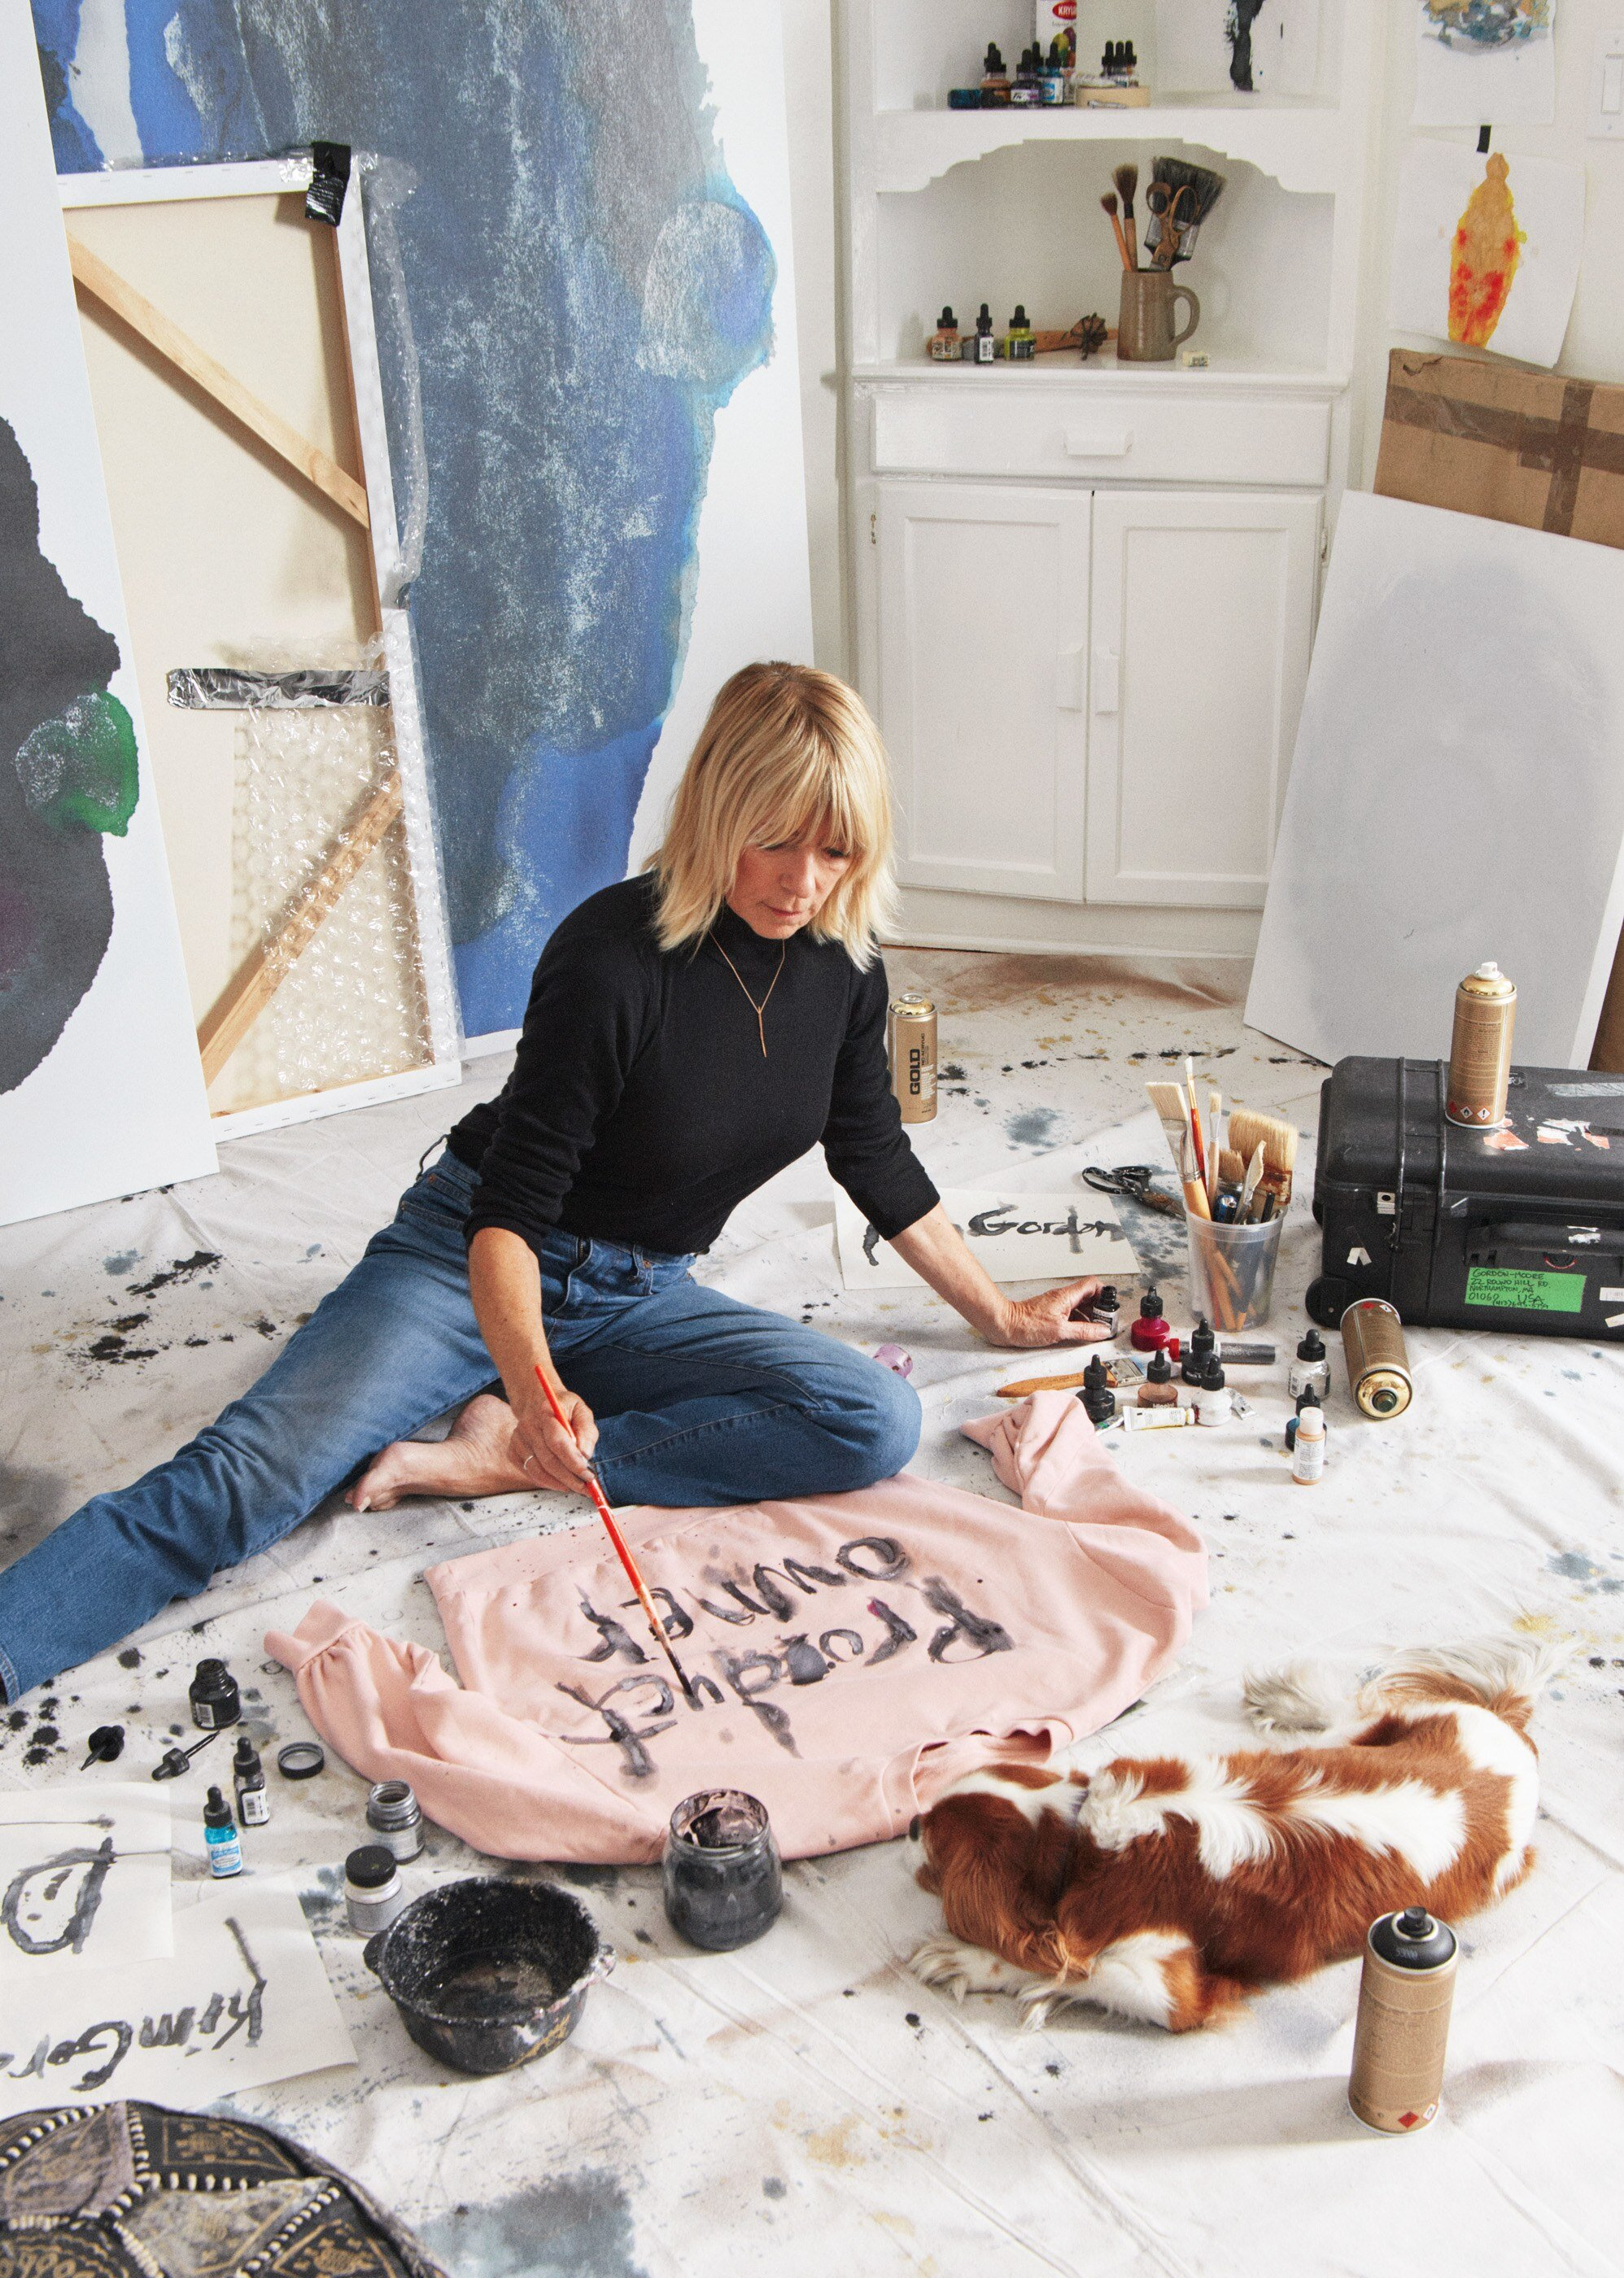 Kim Gordon & Other Stories_Co-lab (1).jpg